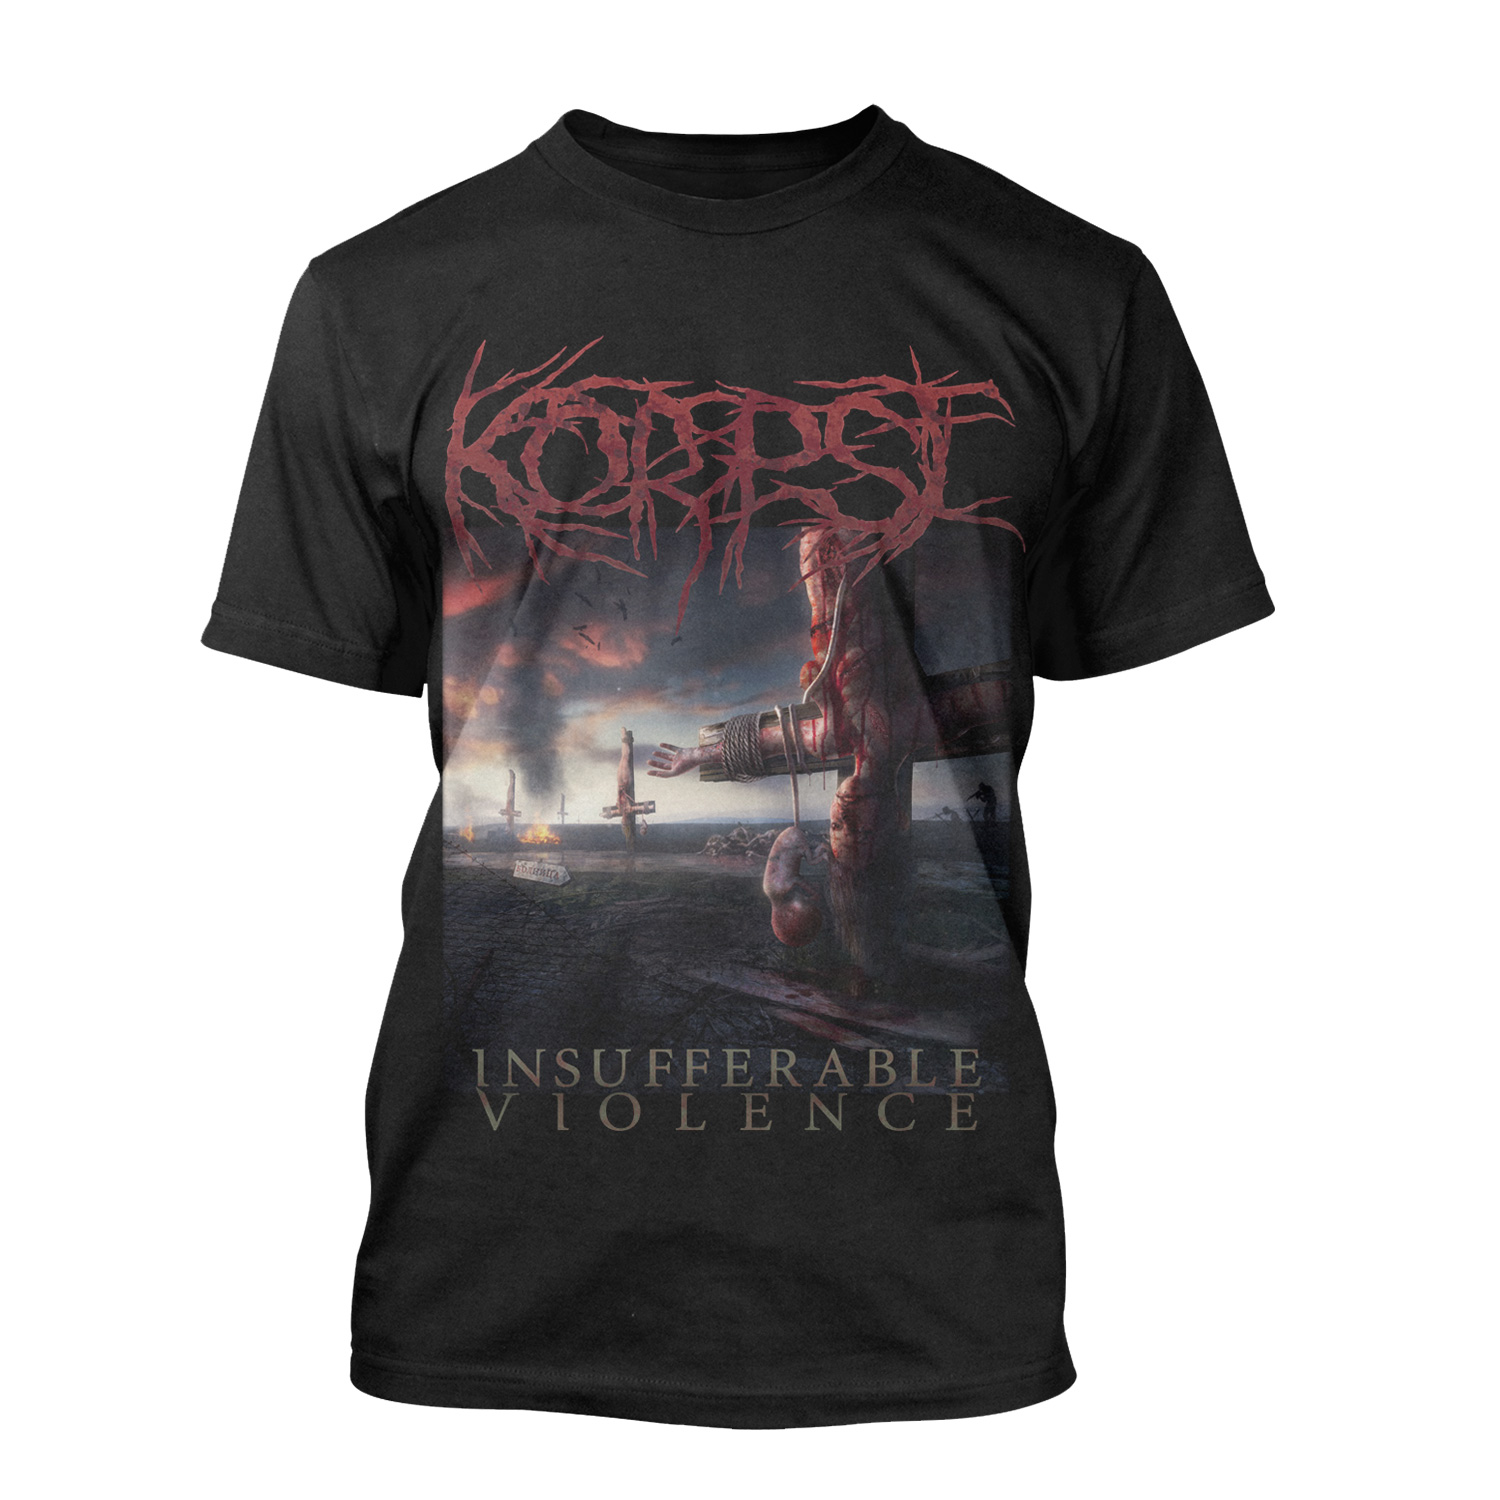 Insufferable Violence CD + Tee Bundle